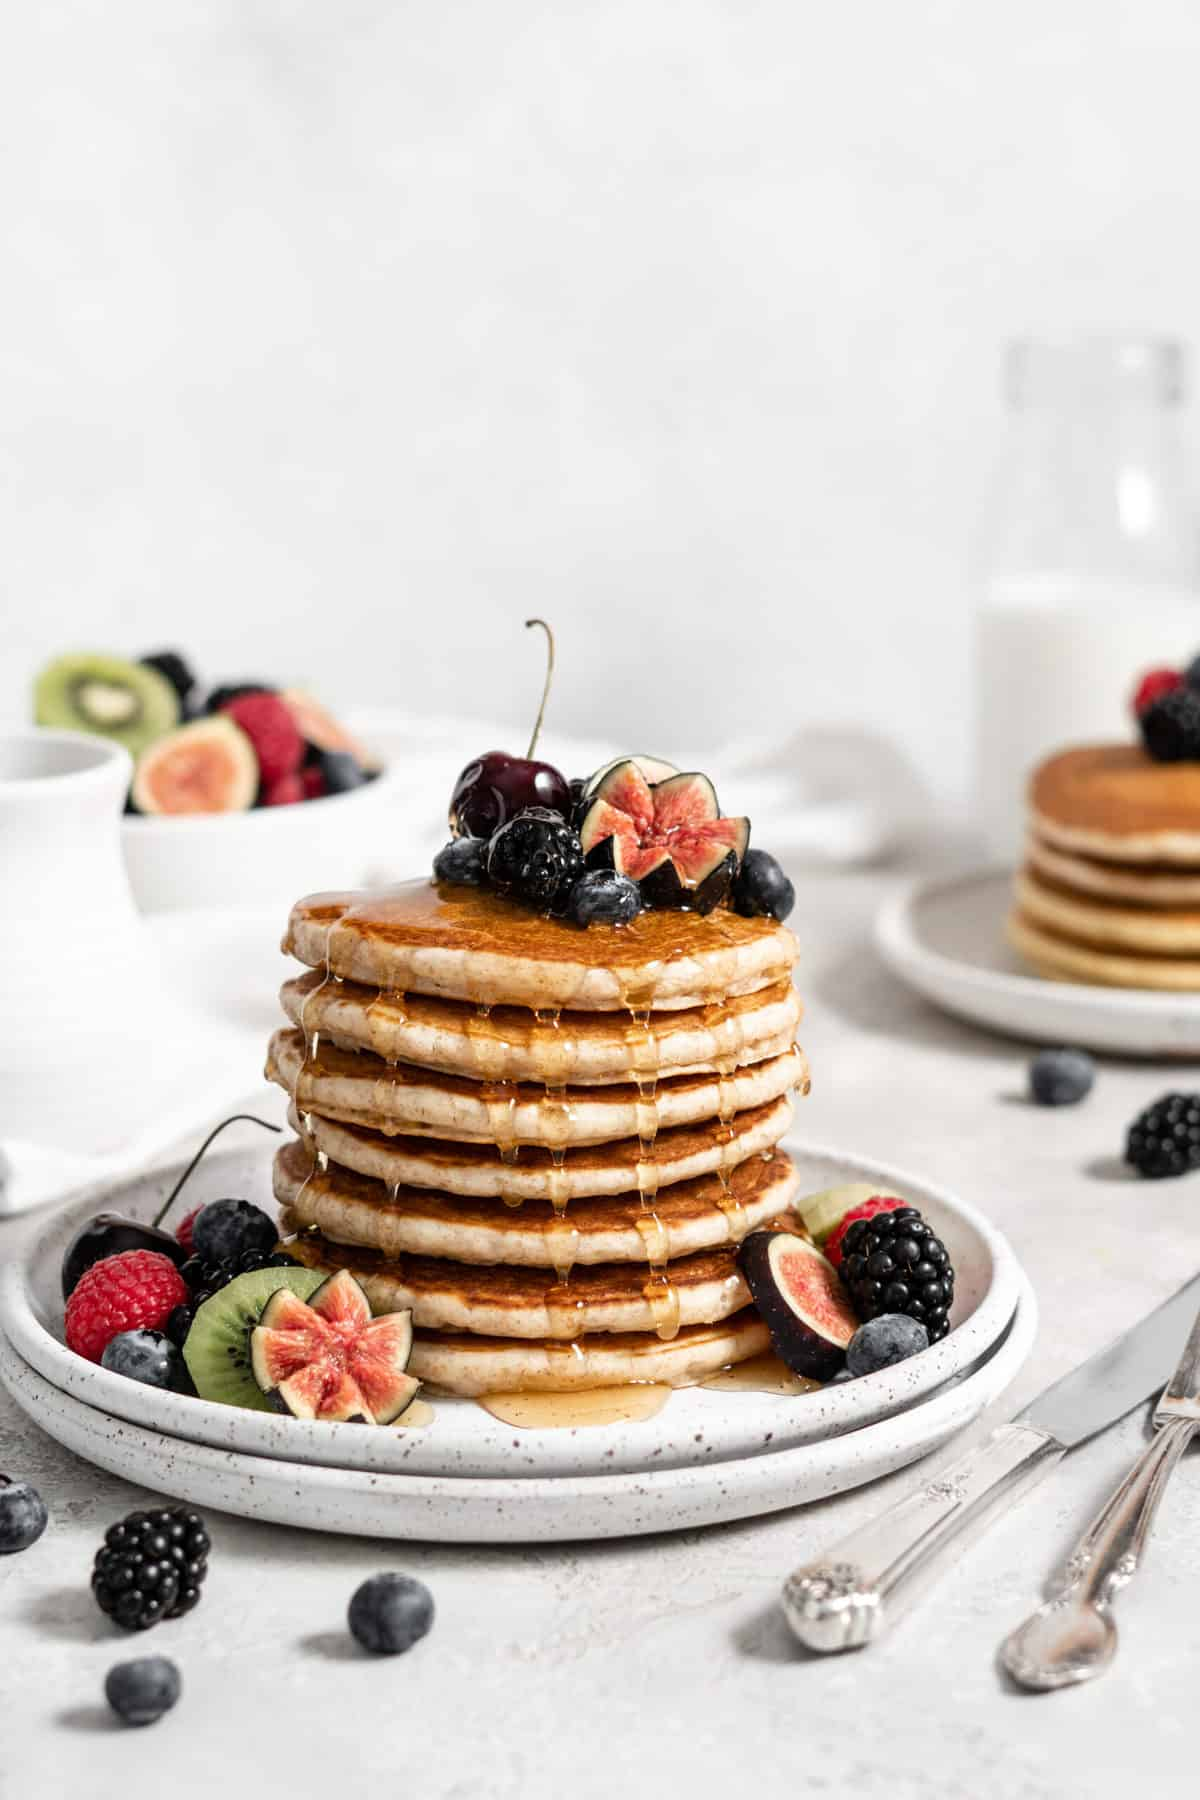 stack of pancakes on a plate with sliced fruit, berries, and maple syrup.